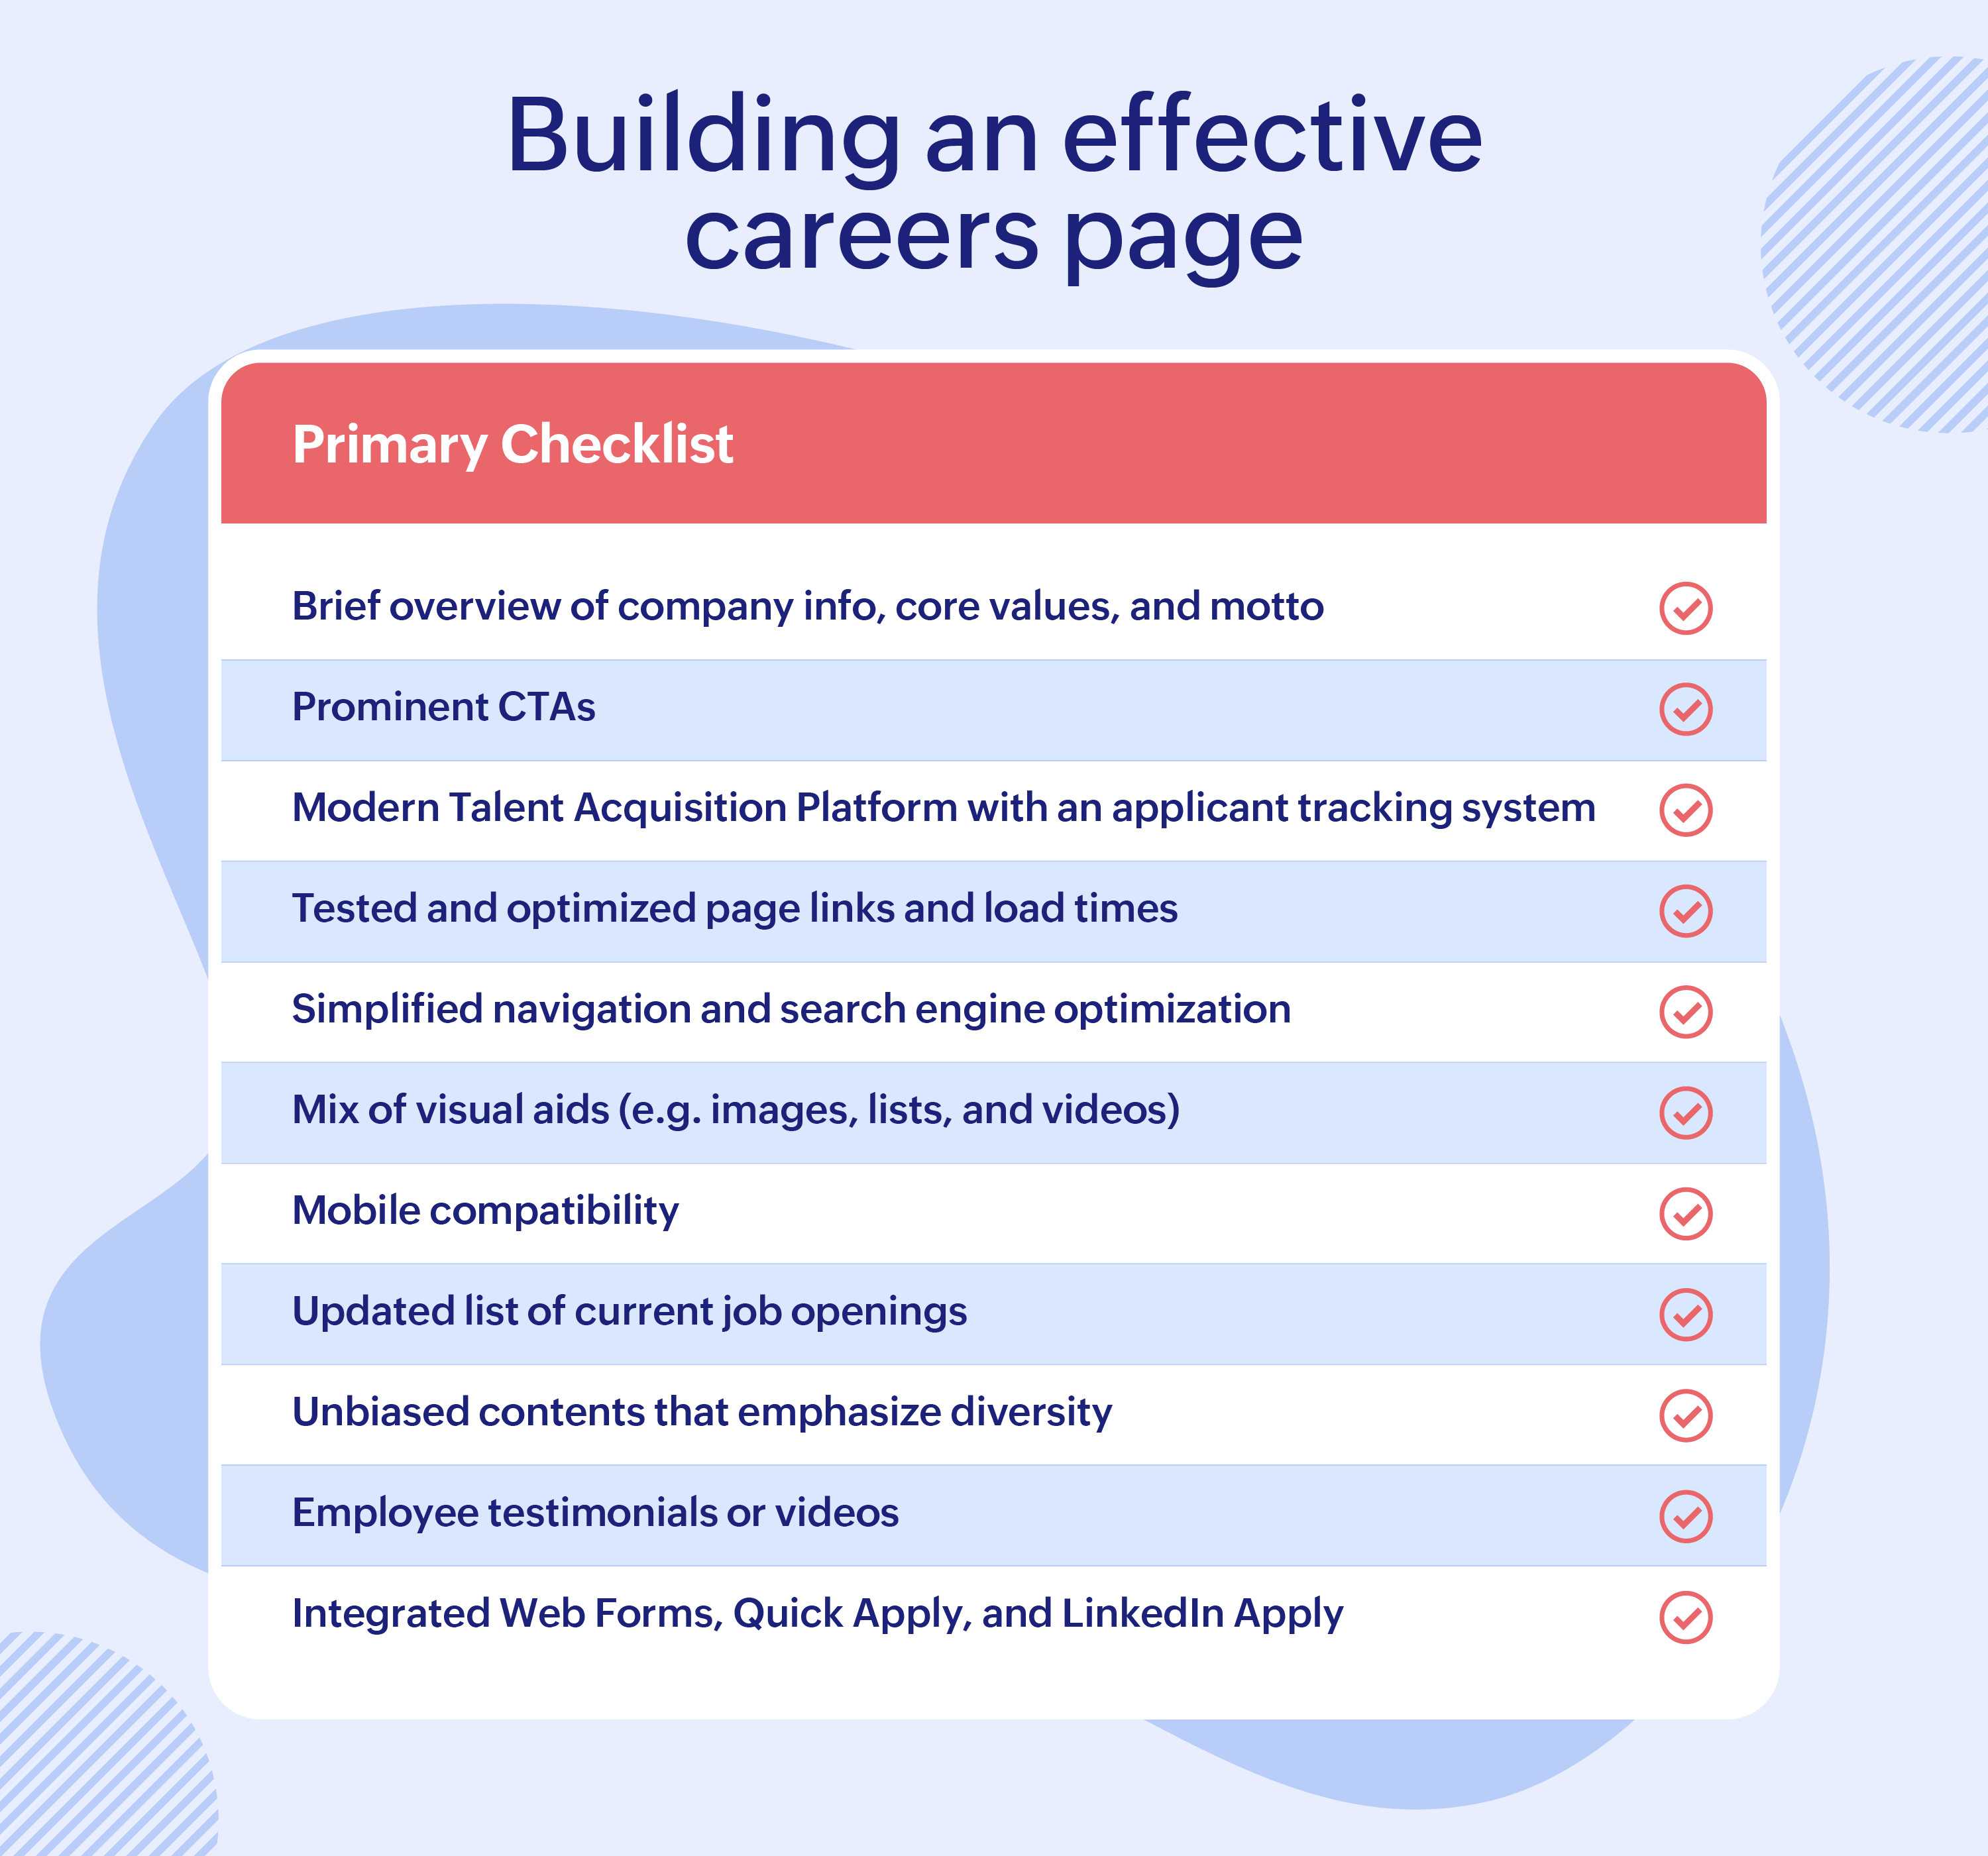 Checklist for an effective career page